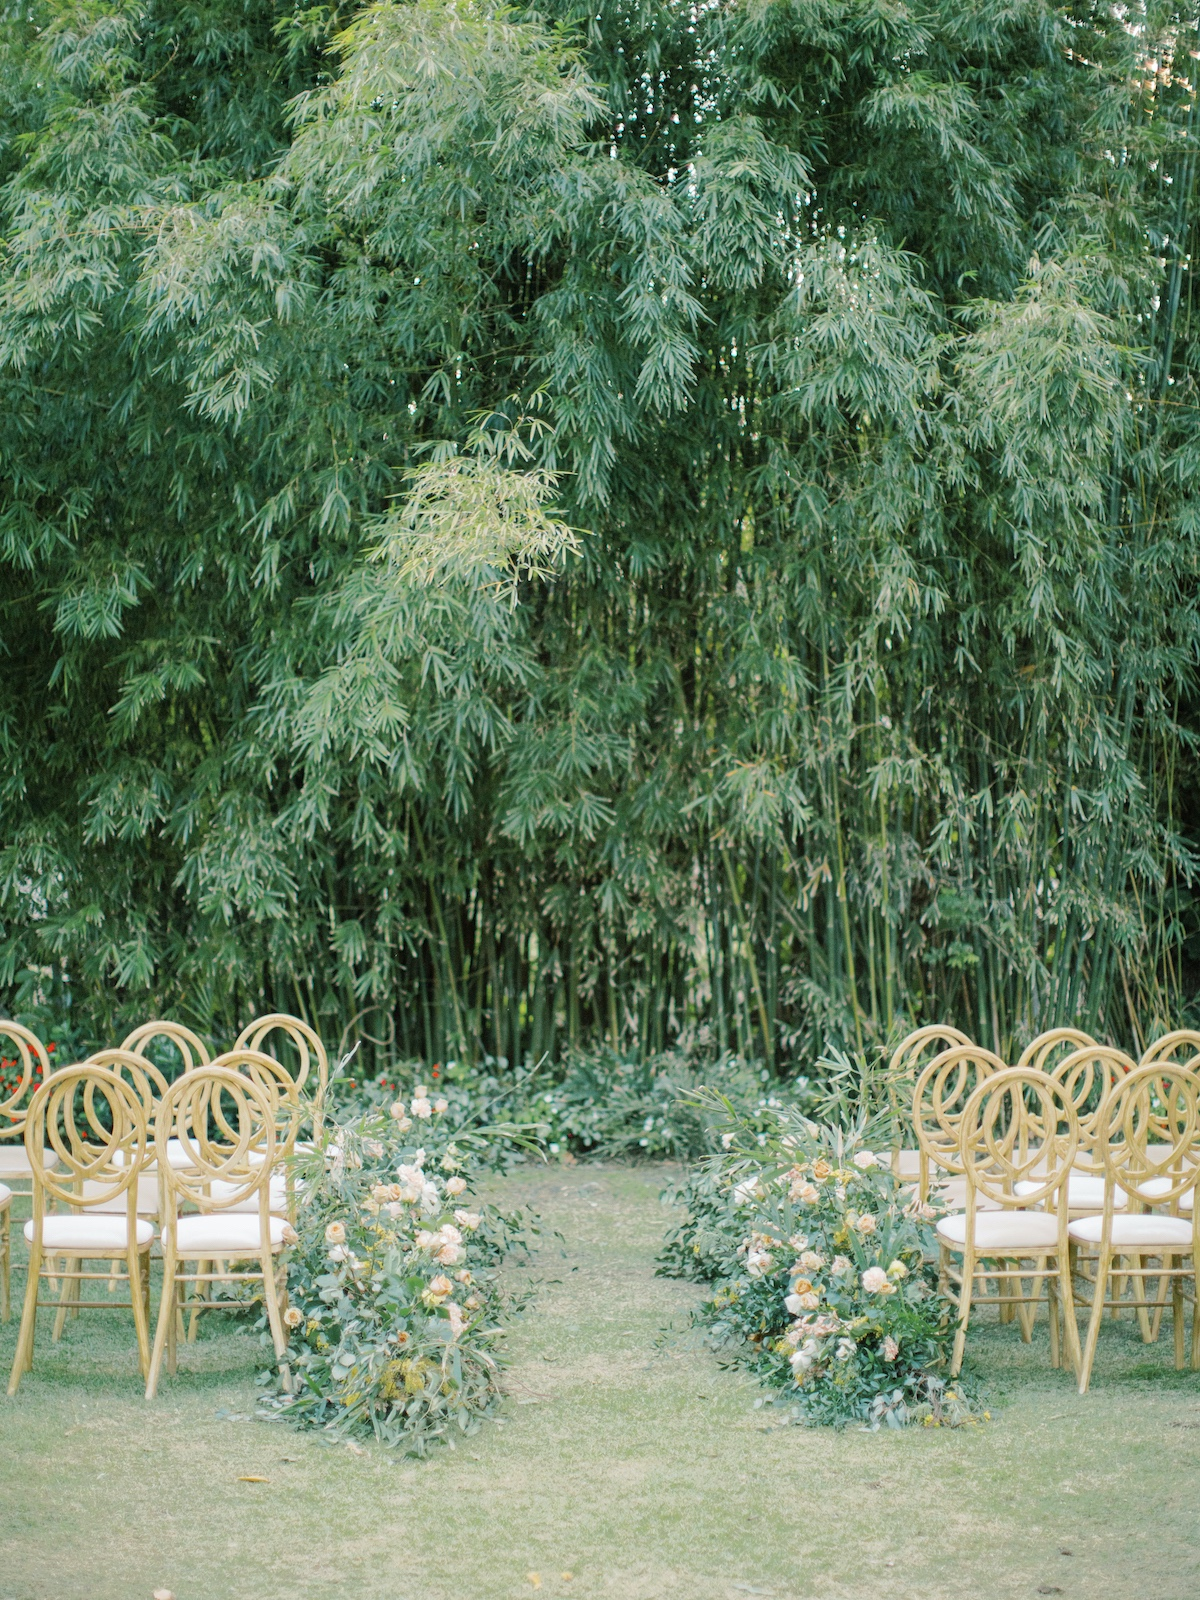 wedding ceremony in front of a forest of bamboo